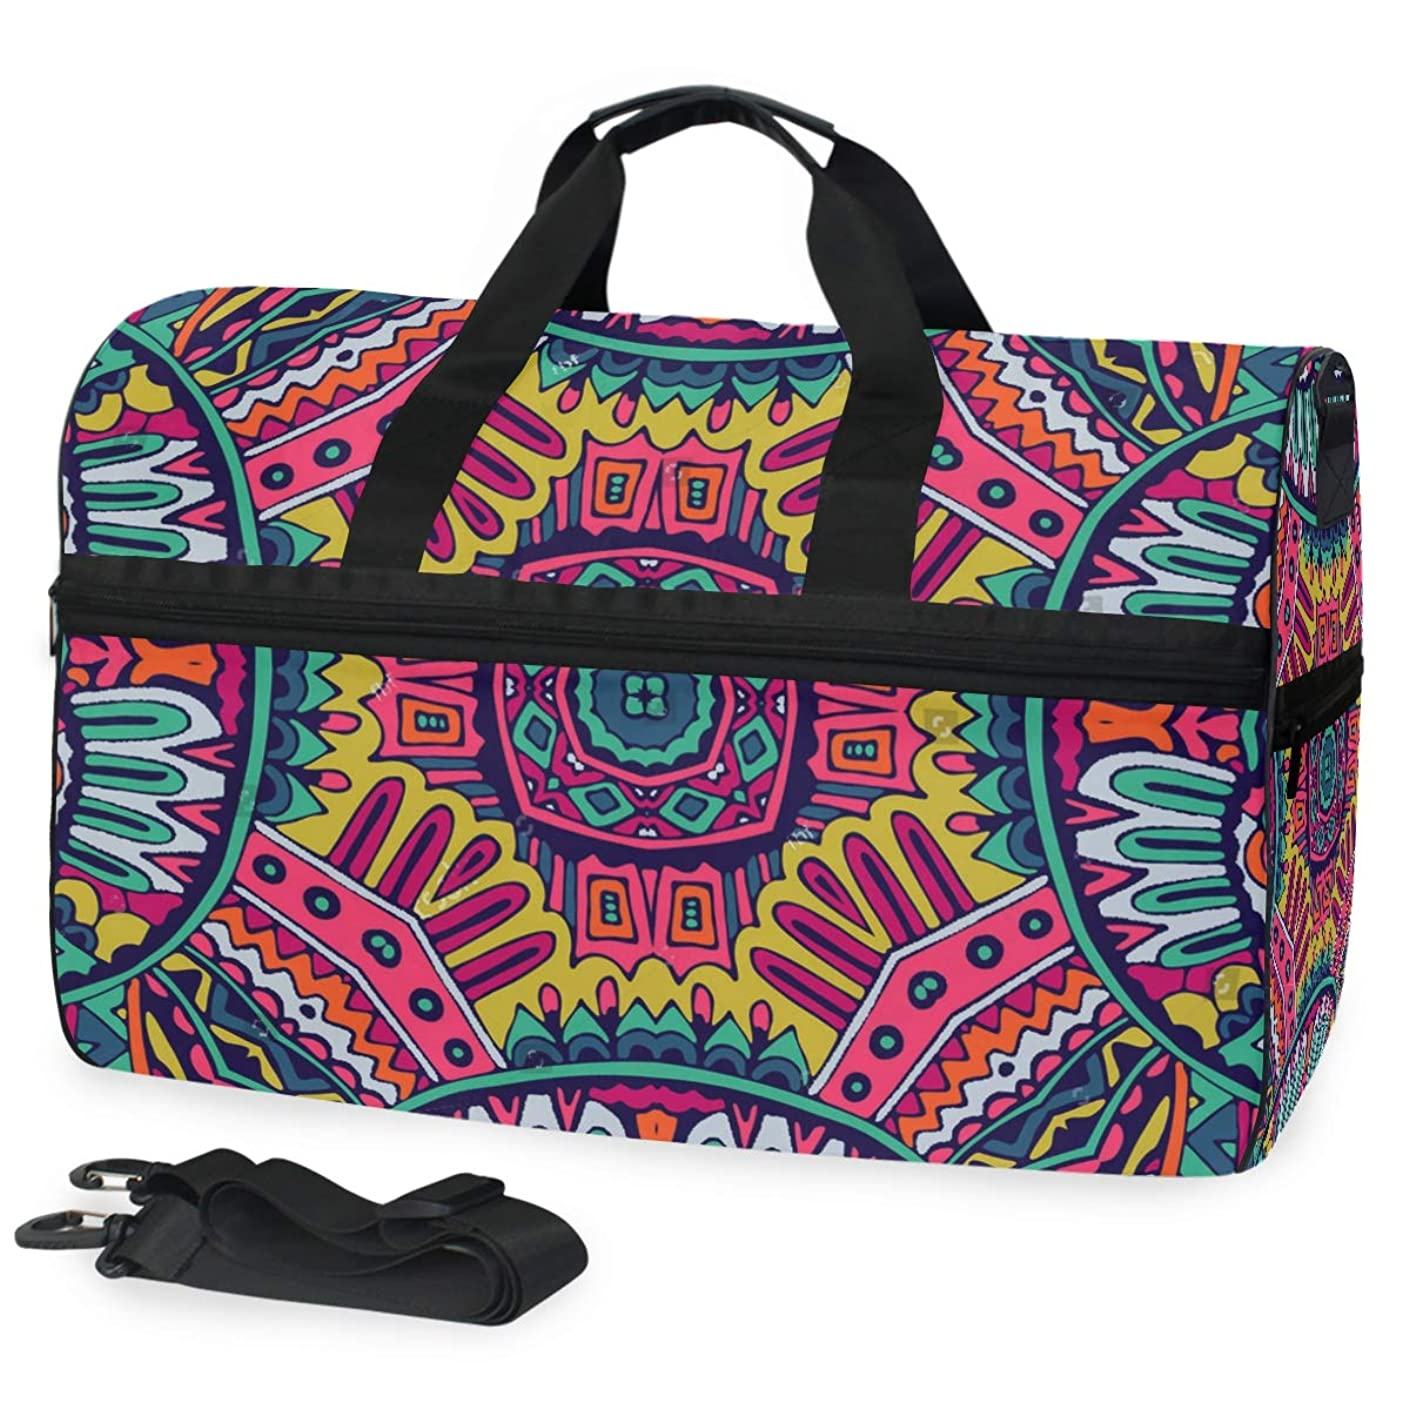 SLHFPX Duffle Bag Colorful Pattern Gym Bag with Shoe Compartment Sport Bag for Men Women